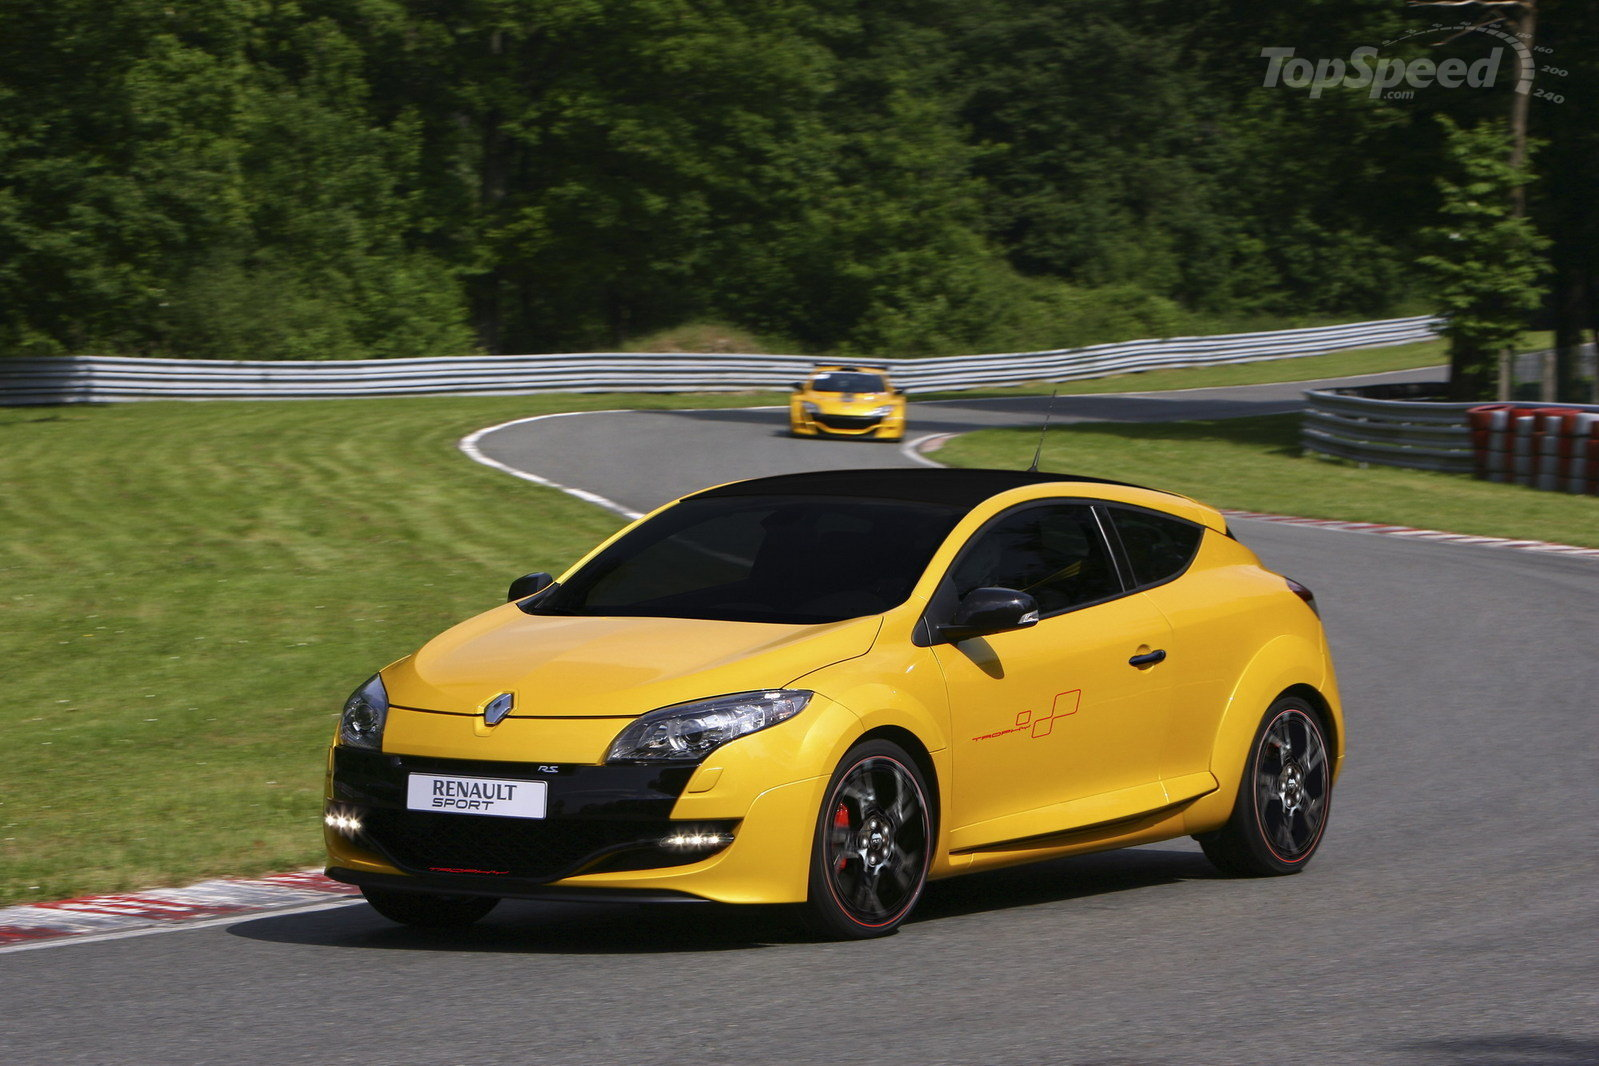 2011 Renault Megane Rs 265 Trophy Review Top Speed